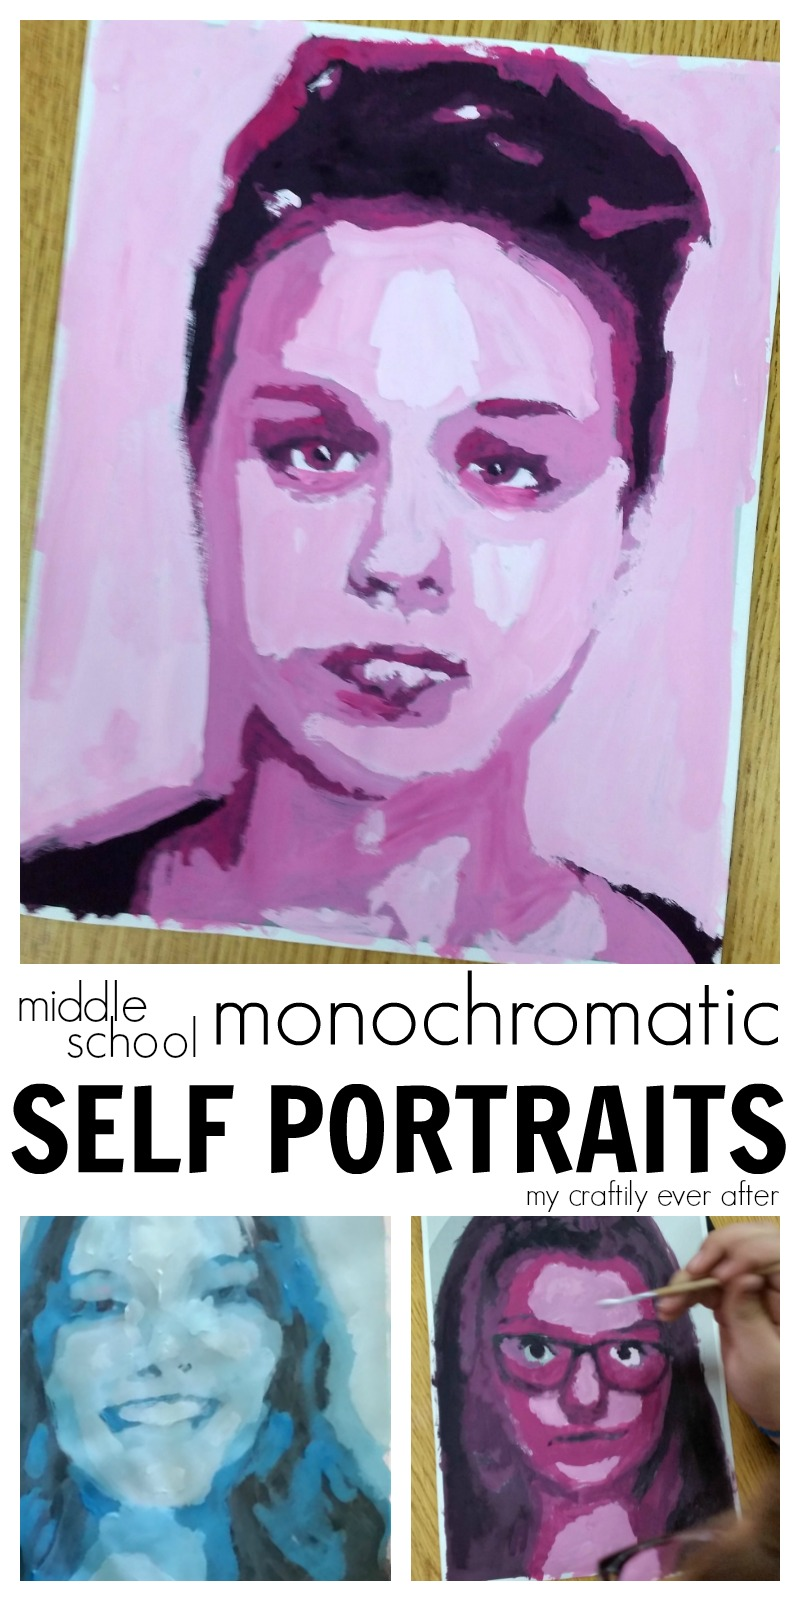 middle-school-monochromatic-self-portraits-by-my-craftily-ever-after